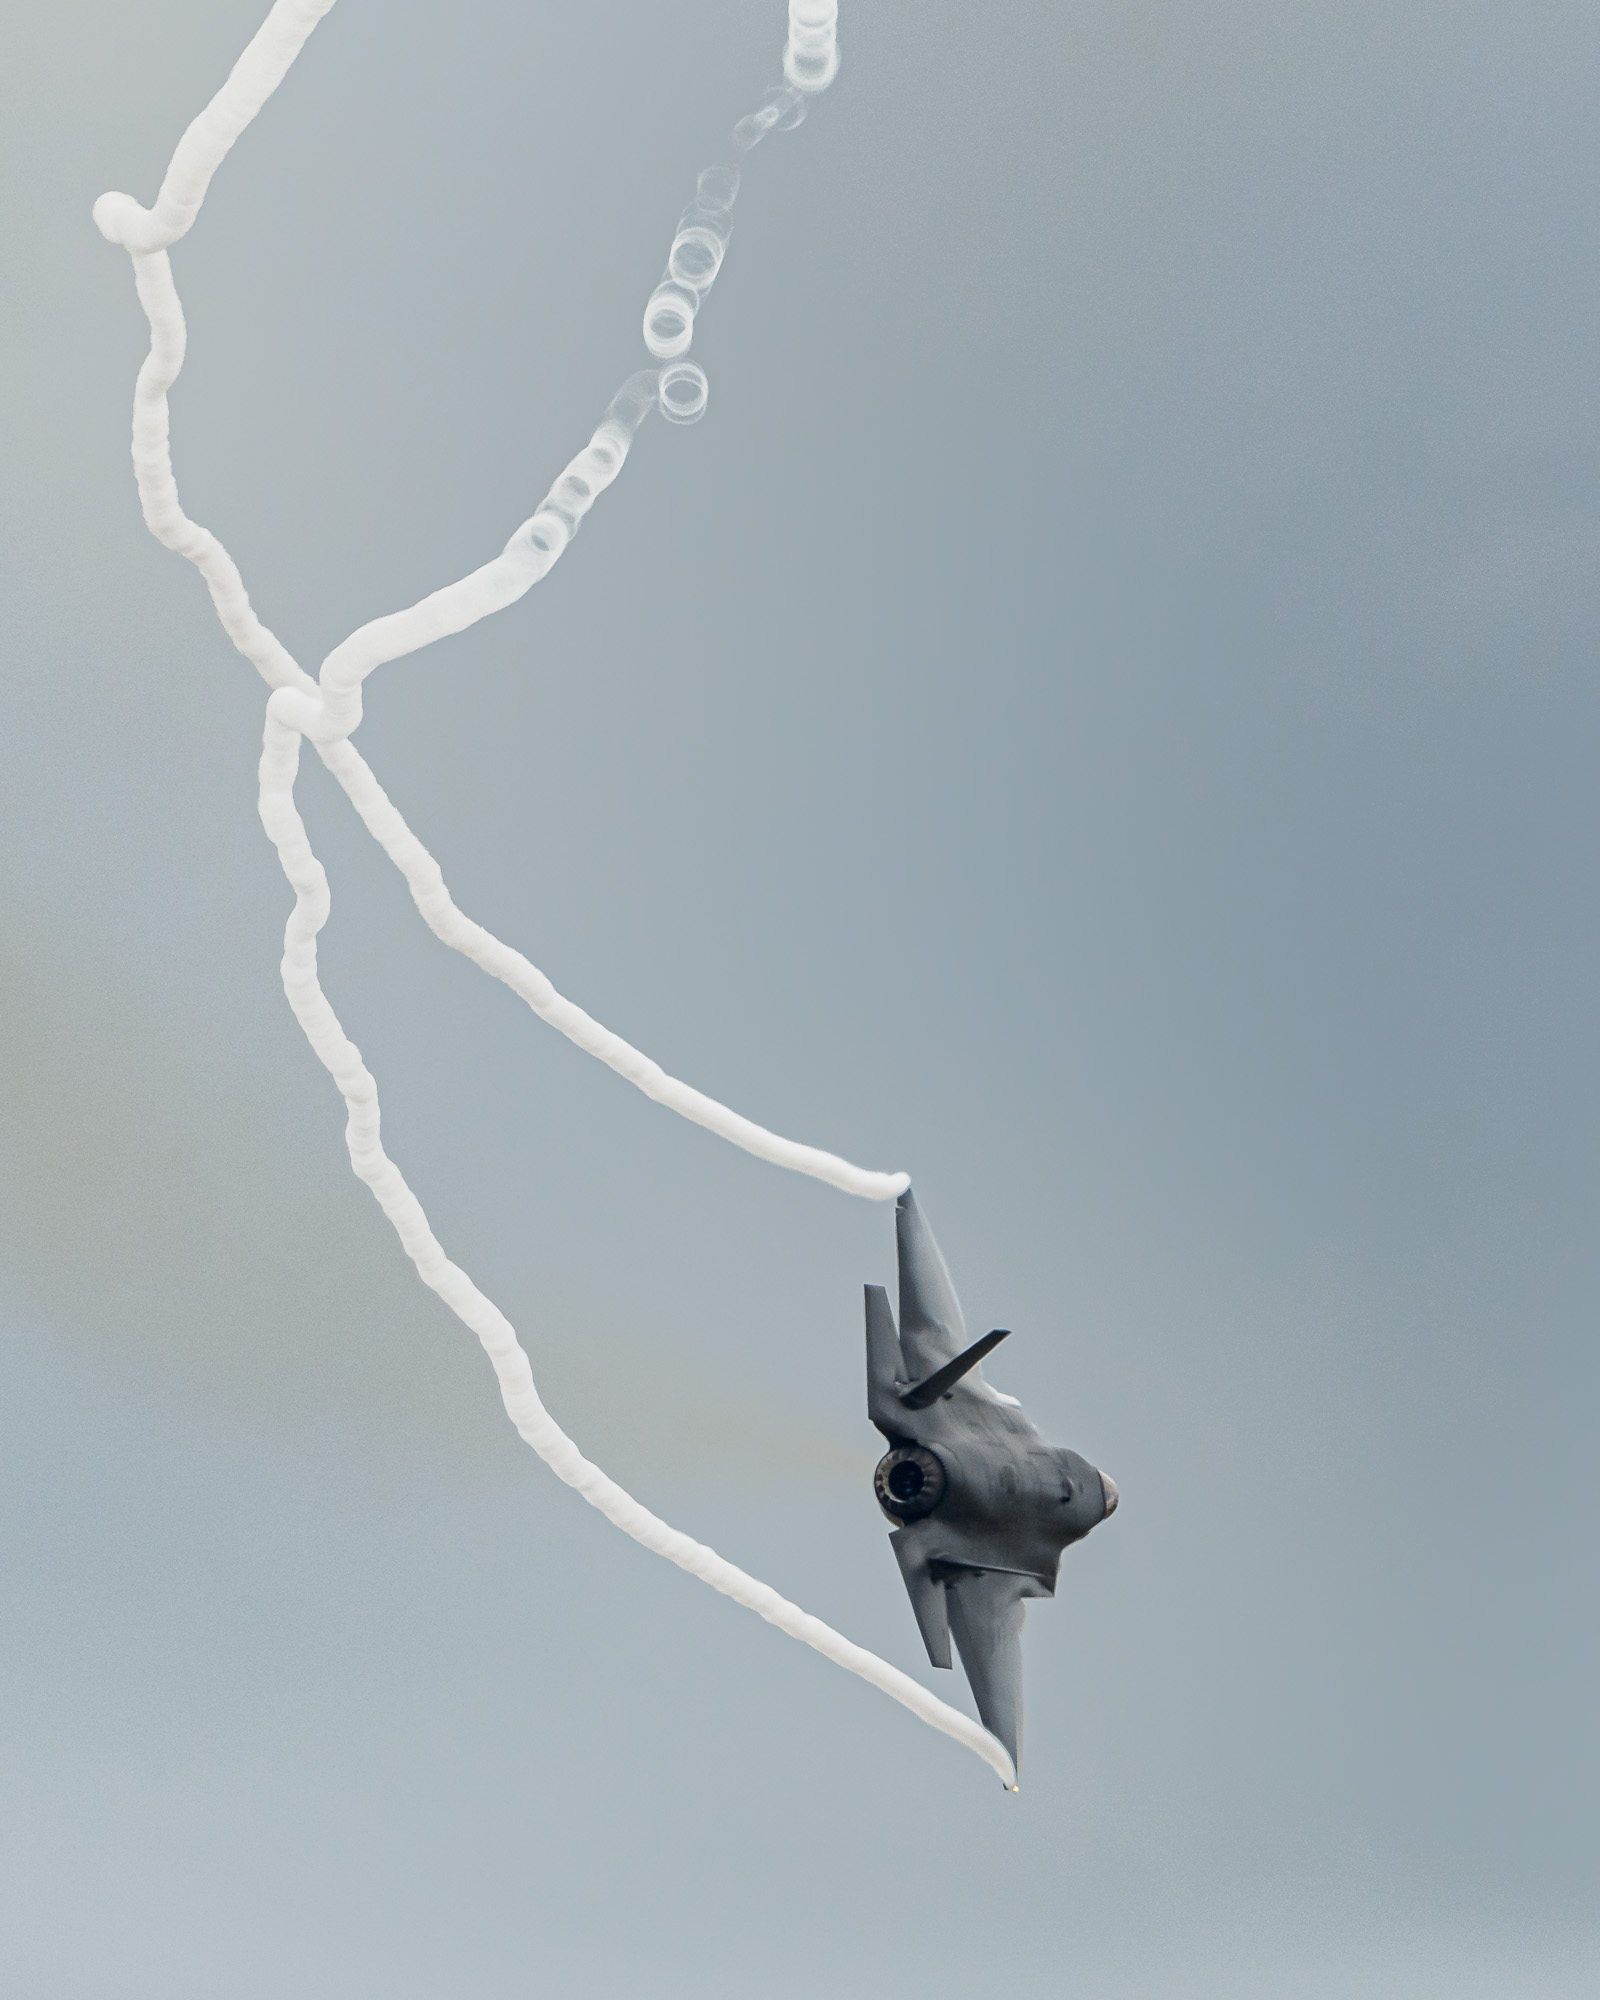 RAF F-35 Lightning-II streaming vapour from its wingtips: the vapour seems to break up into bubbles.